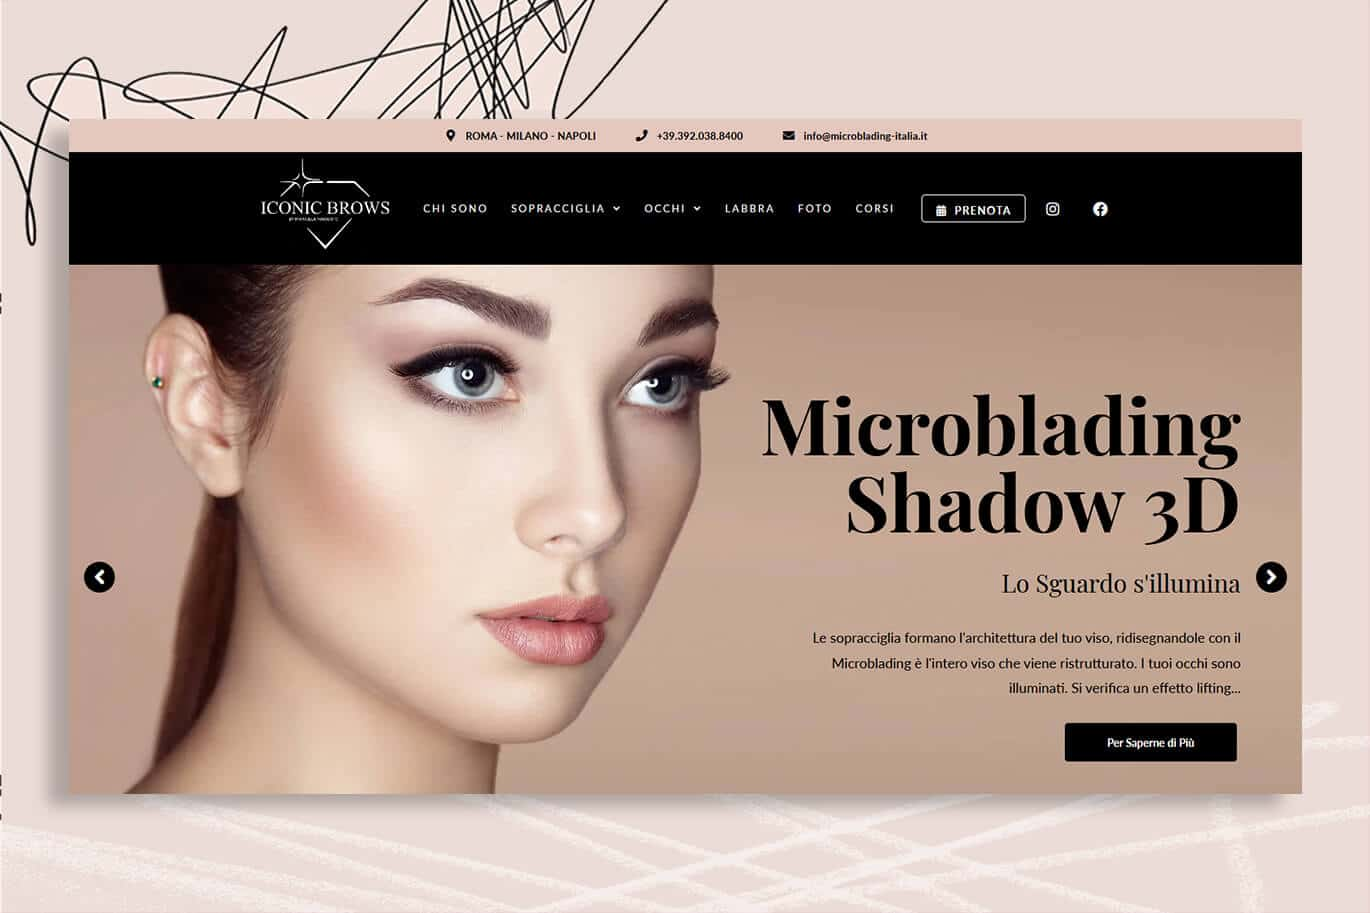 Sito Internet Microblading iconic brows